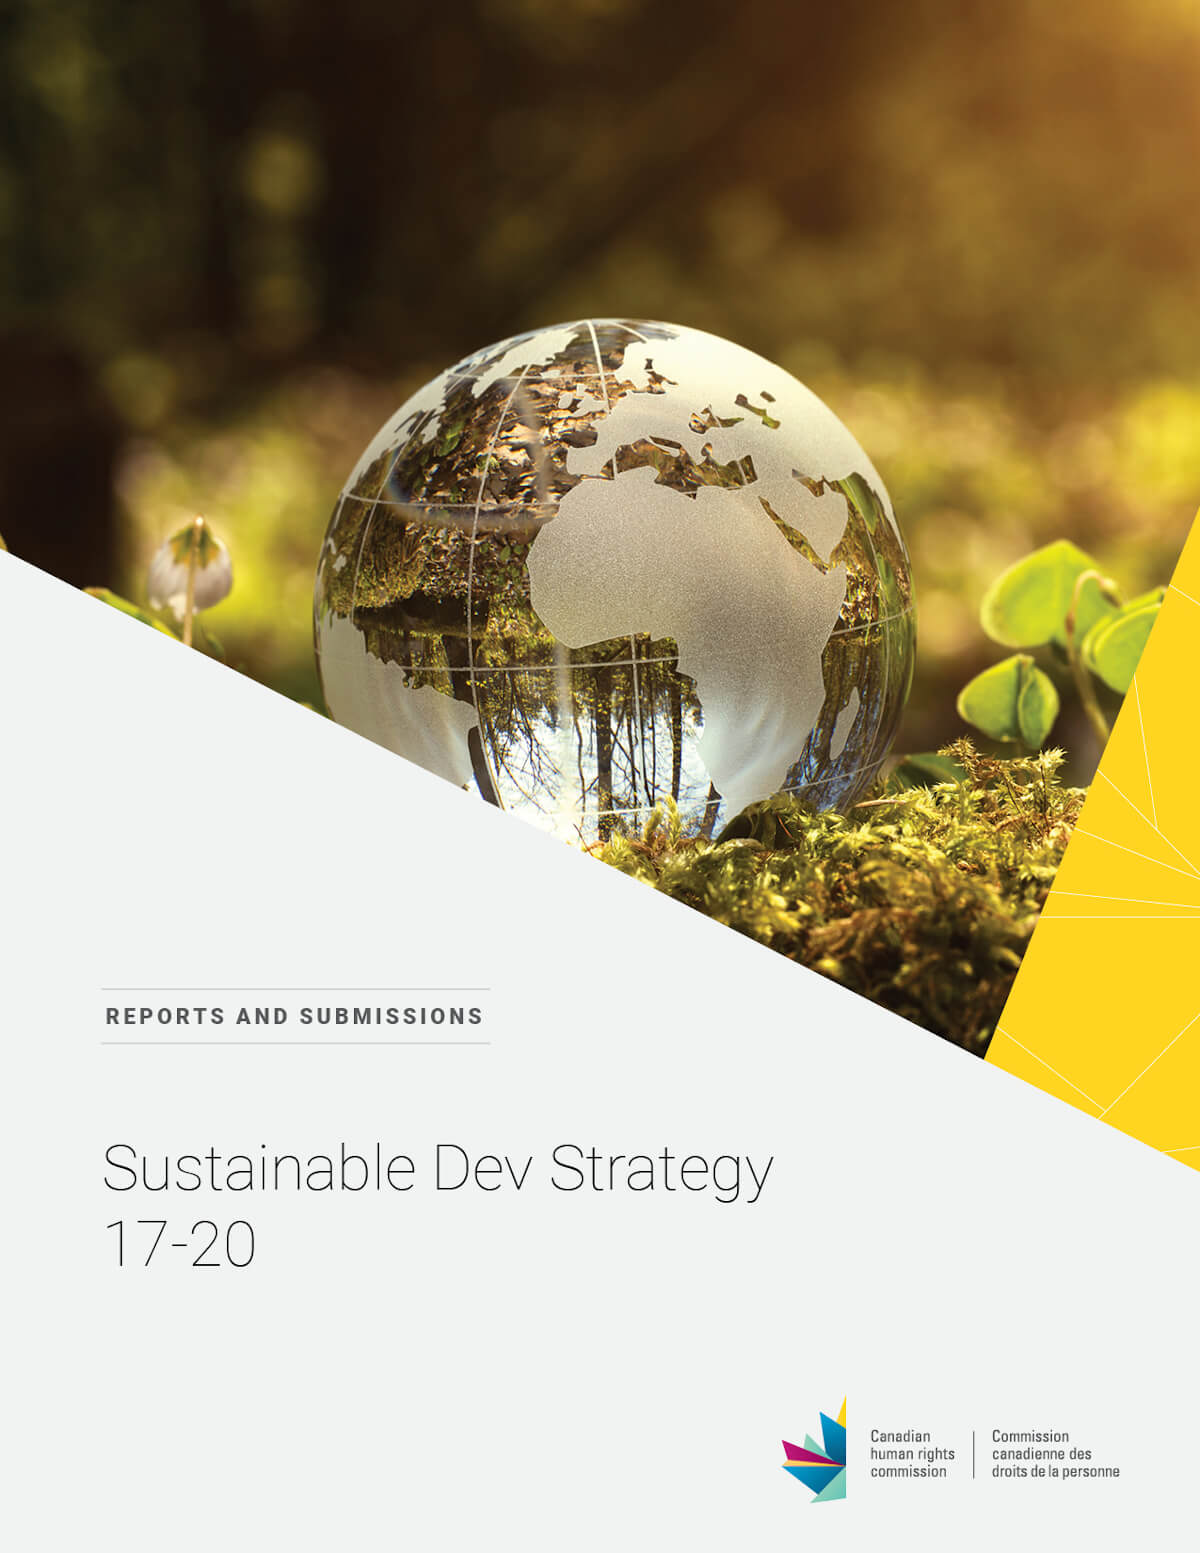 2017-2020 Sustainable Development Strategy